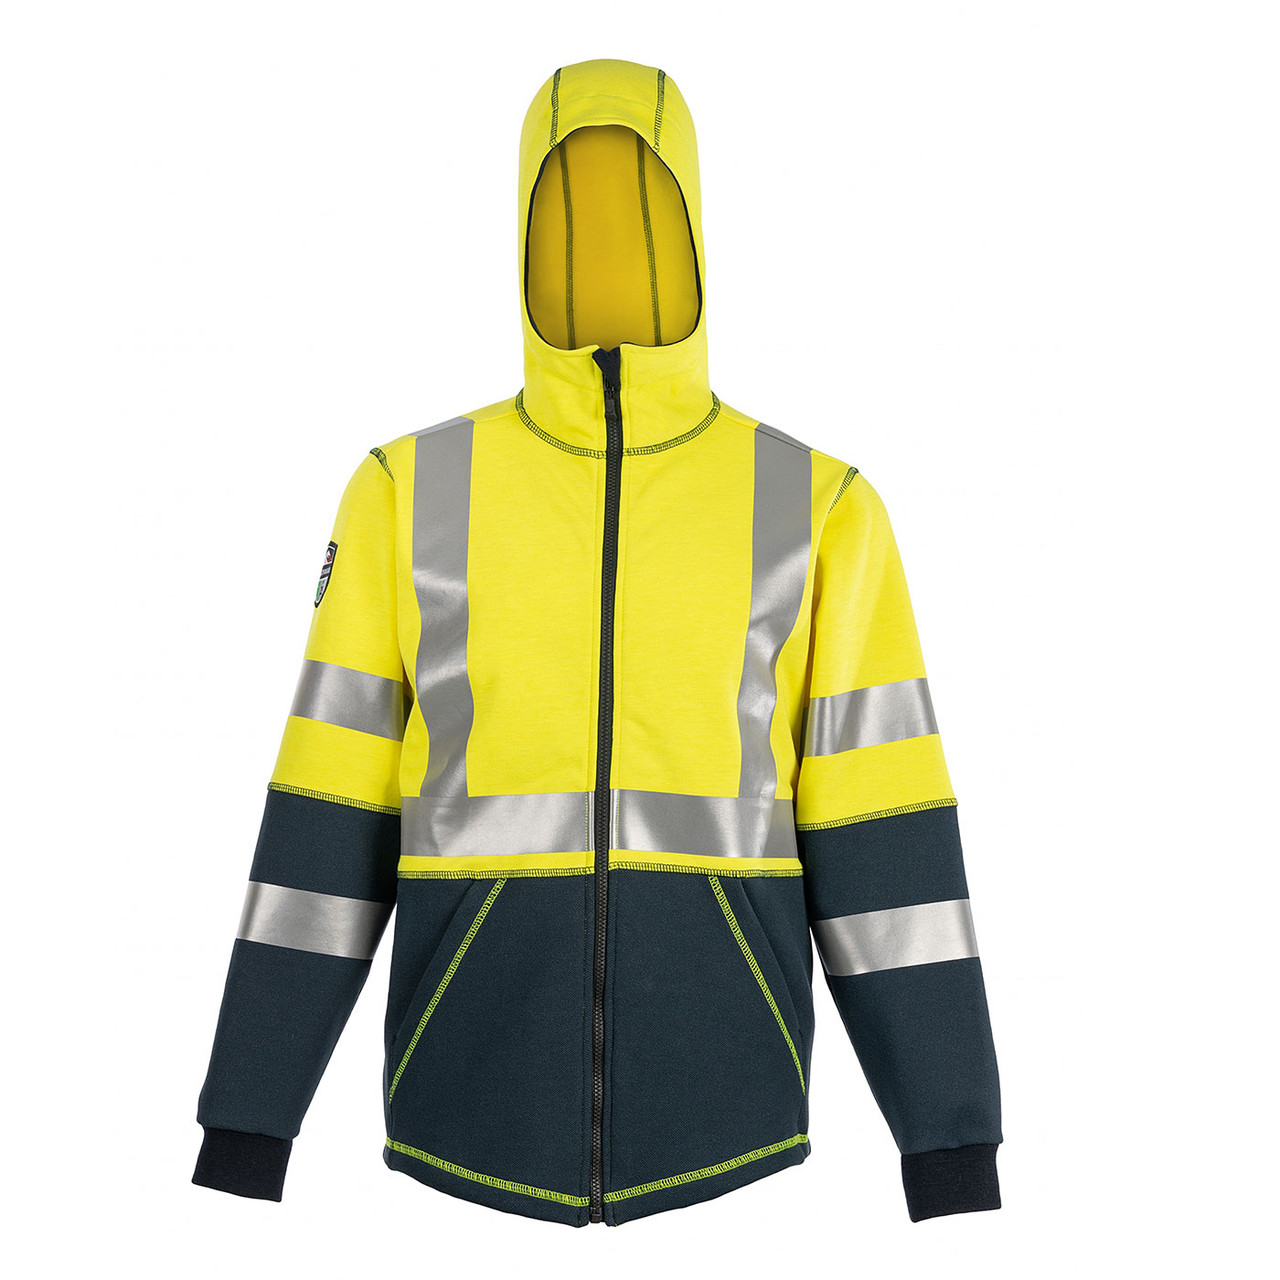 DragonWear Elements Hi Viz Lightning Hooded Jacket Orange